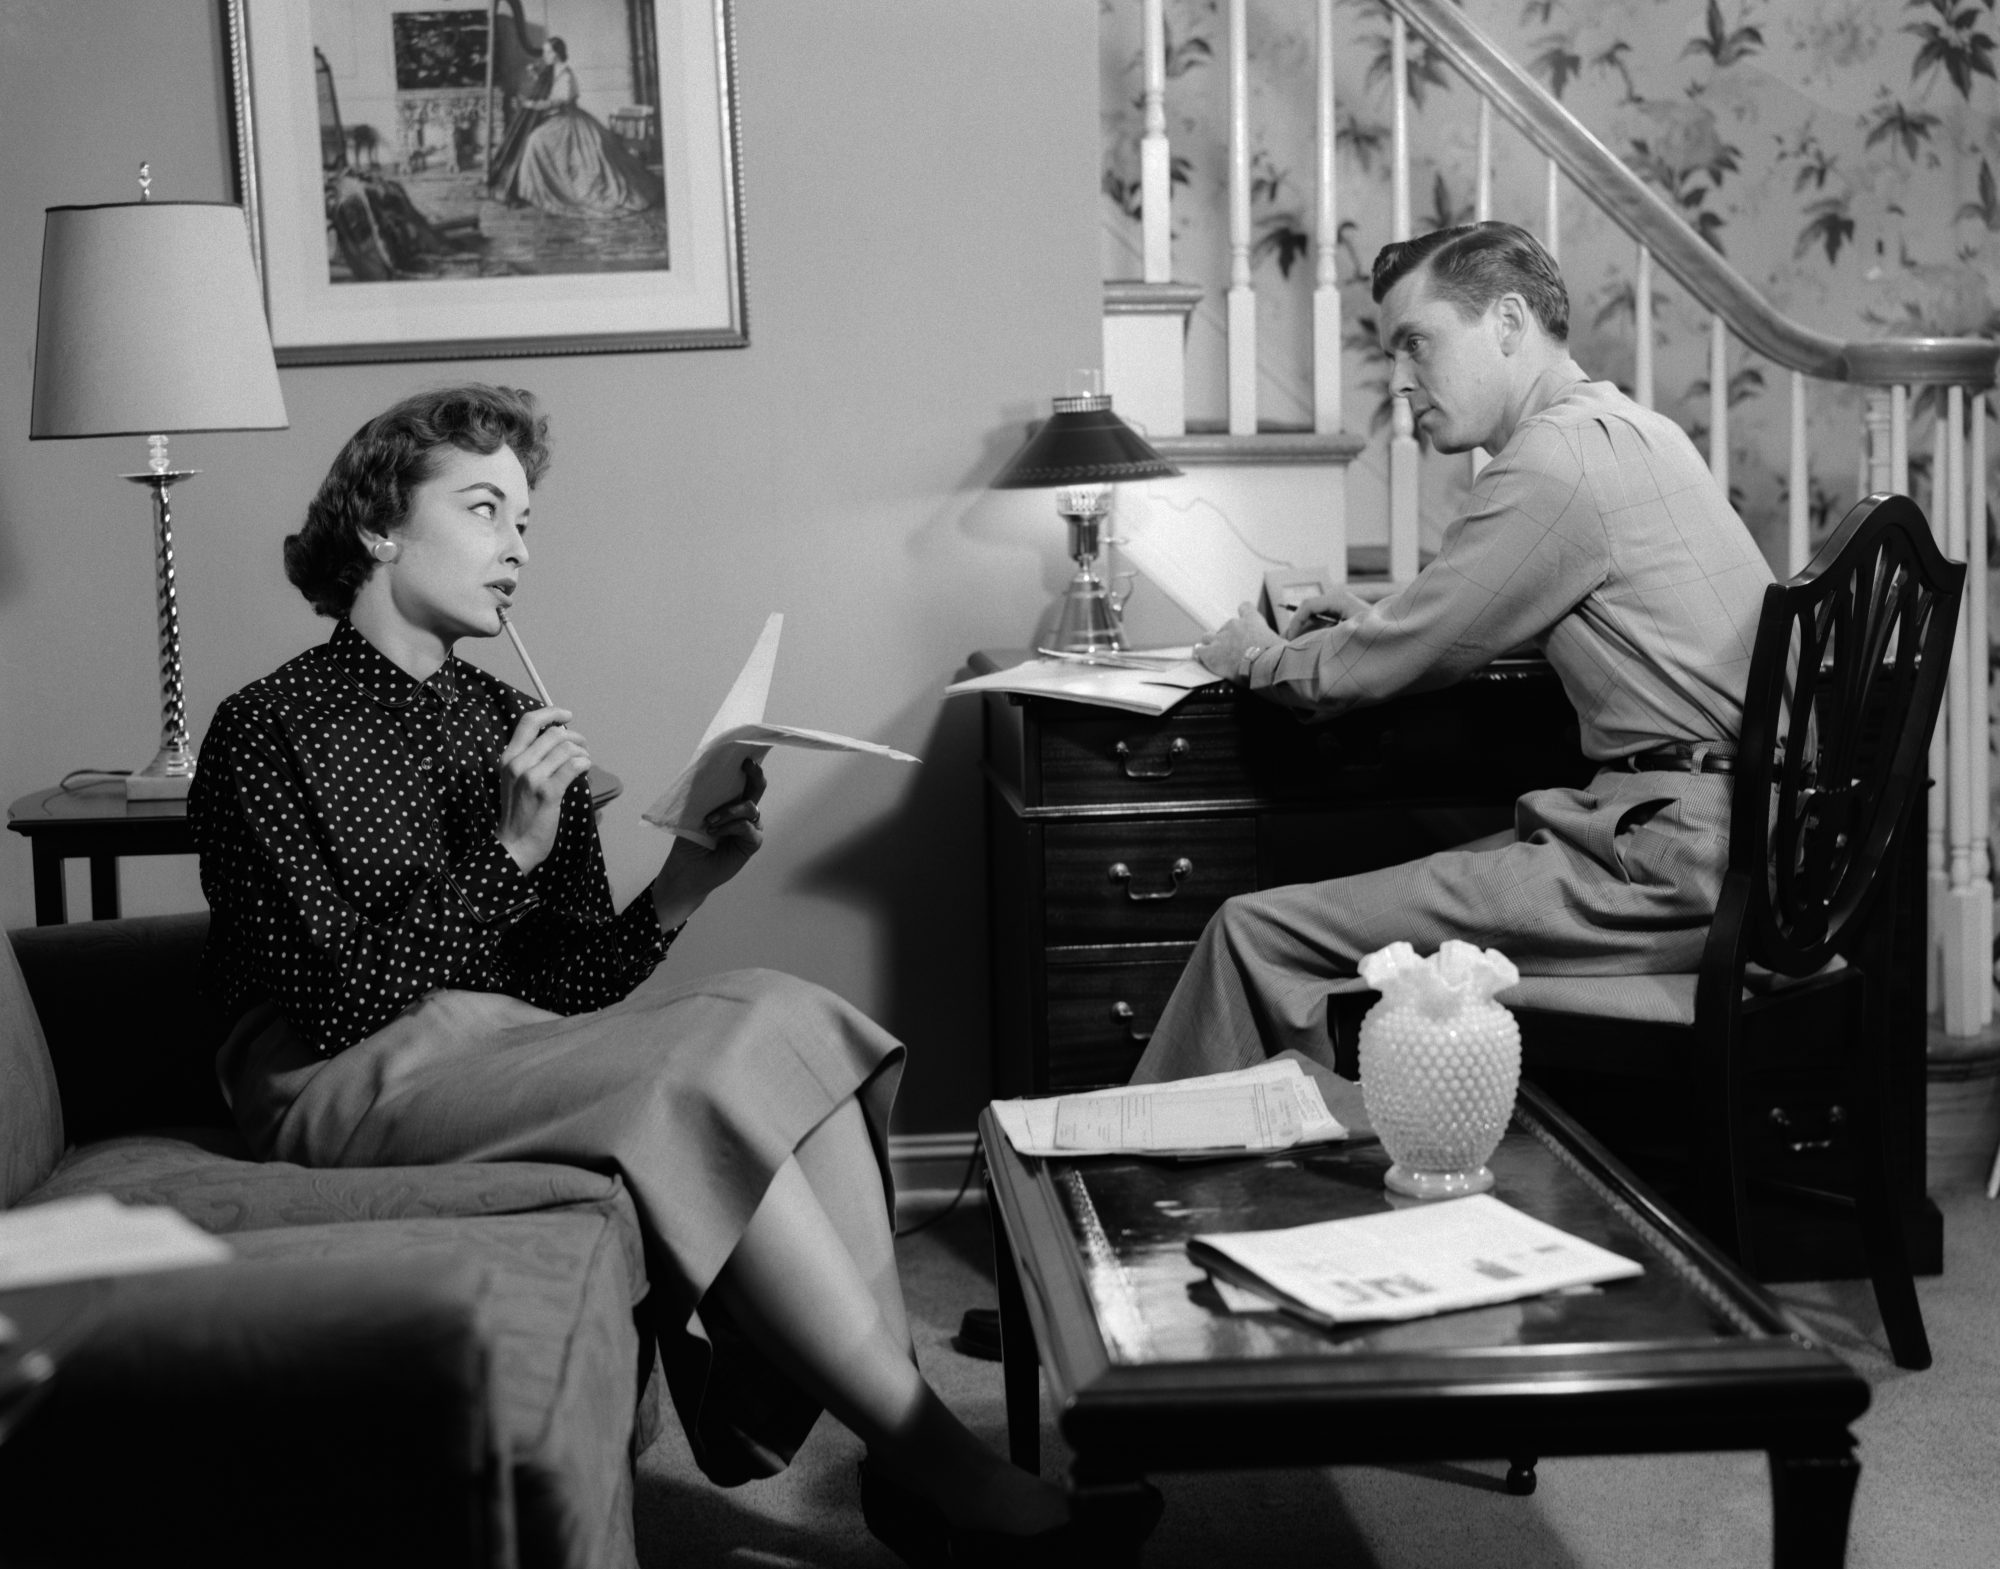 Couple Talking in Living Room 1950s